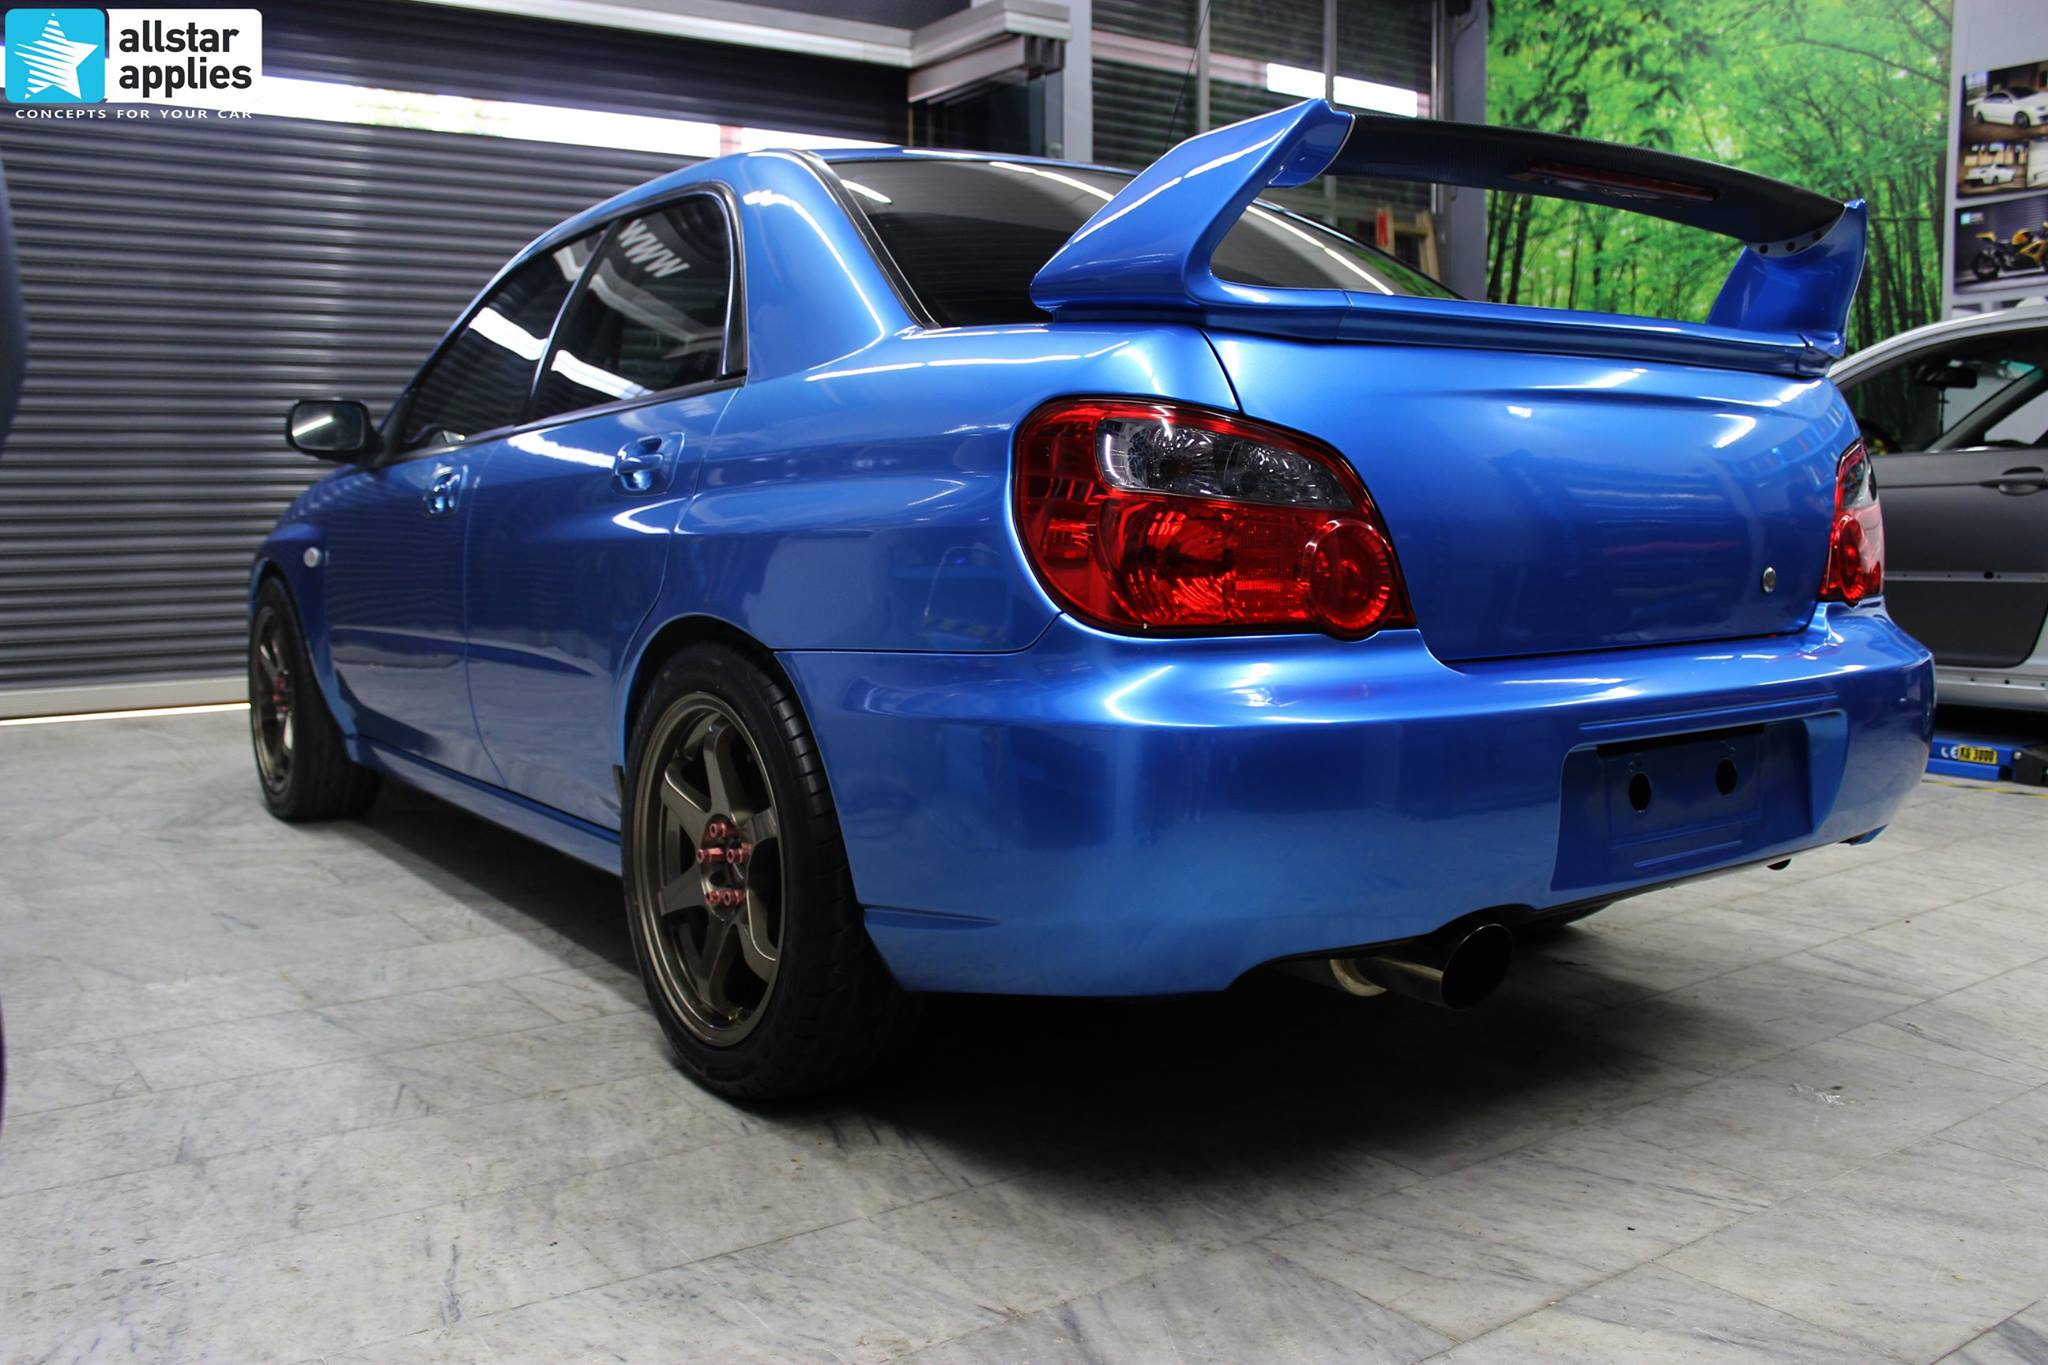 Subaru Sti - Gloss Blue Metallic (2)